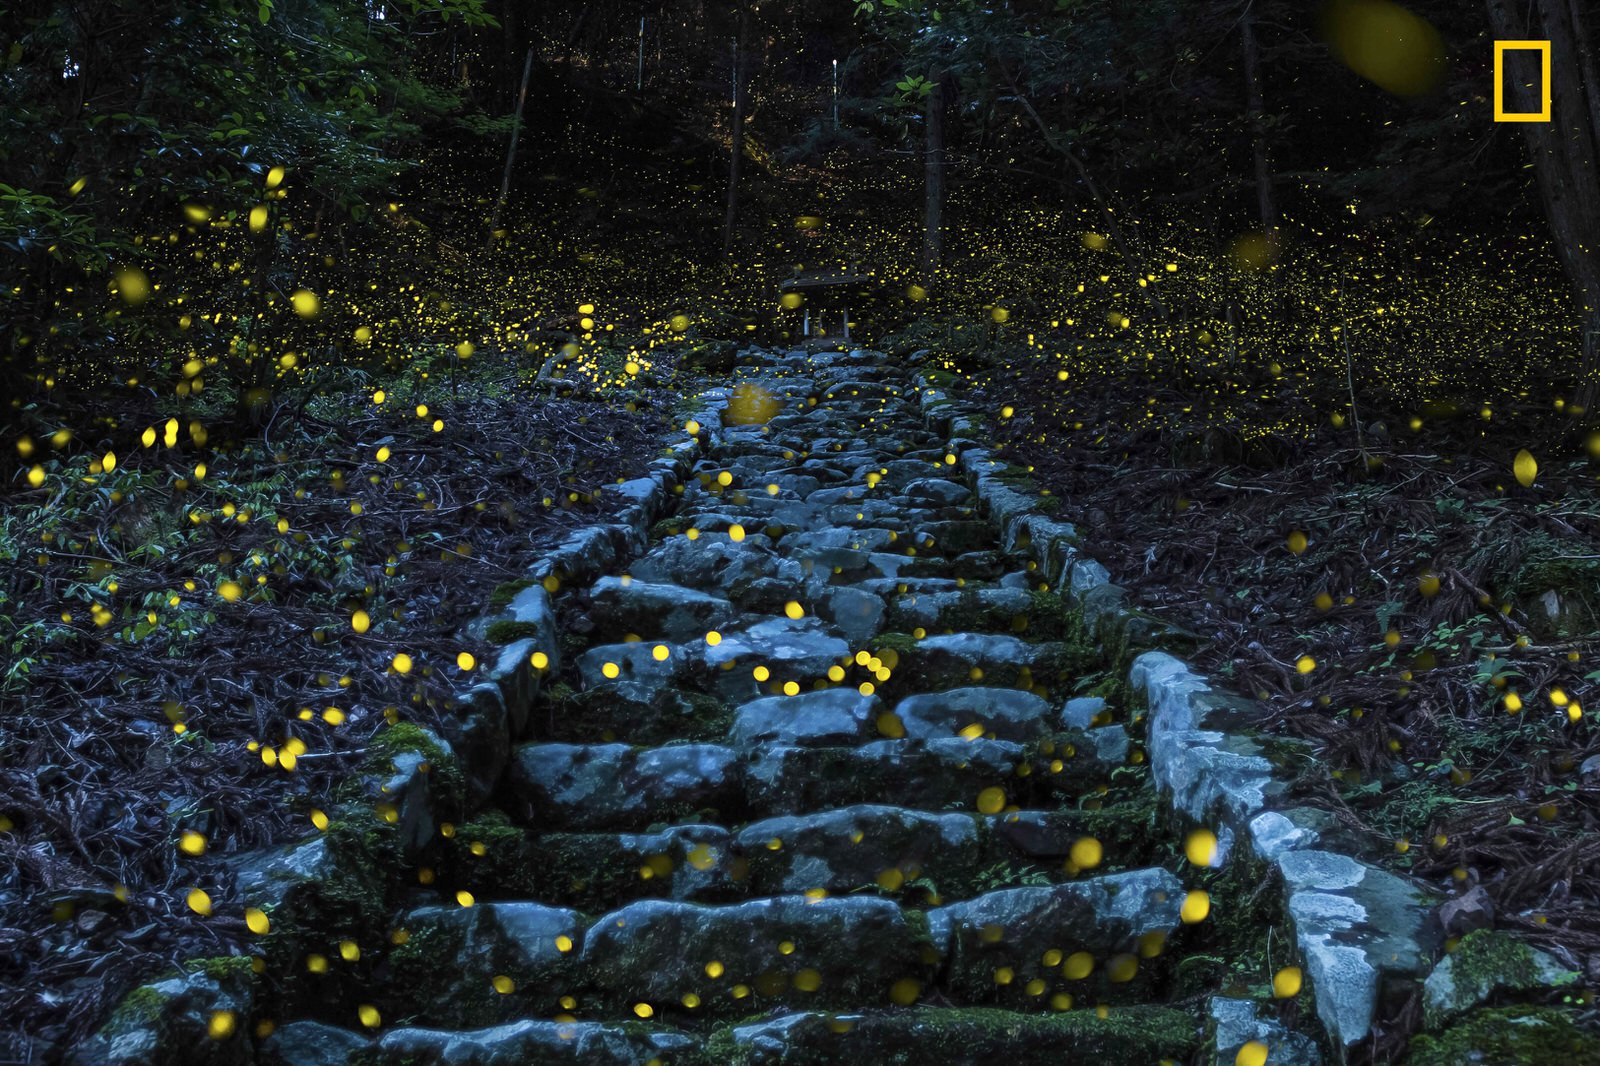 "NATURE - Honorable Mention 2. Photo and caption by Yutaka Takafuji/ National Geographic Travel Photographer of the Year.  Forest of the Fairy . ""Shooting in the forest This photograph was taken in the evening hours of a humid early summer day in the forest of a small remote village in the Tamba area of Japan. It beautifully captures the magical atmosphere of Princess fireflies carpeting a stairway leading to a small shrine revered by the local people."""